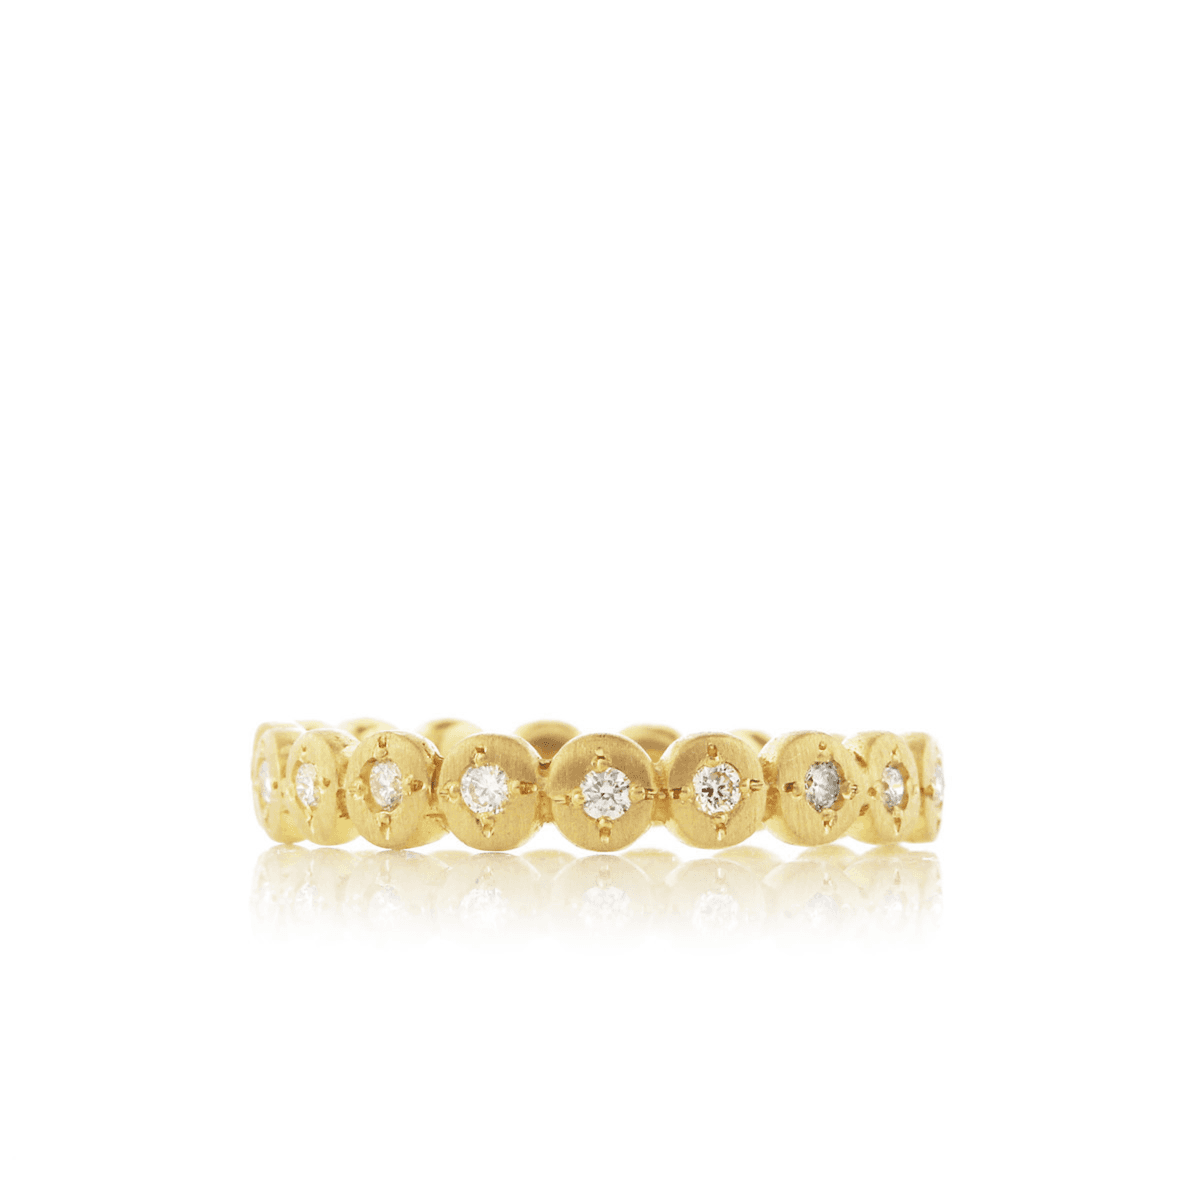 Gold Band With Diamonds - Adel Chefridi - Mansoor Jewelers